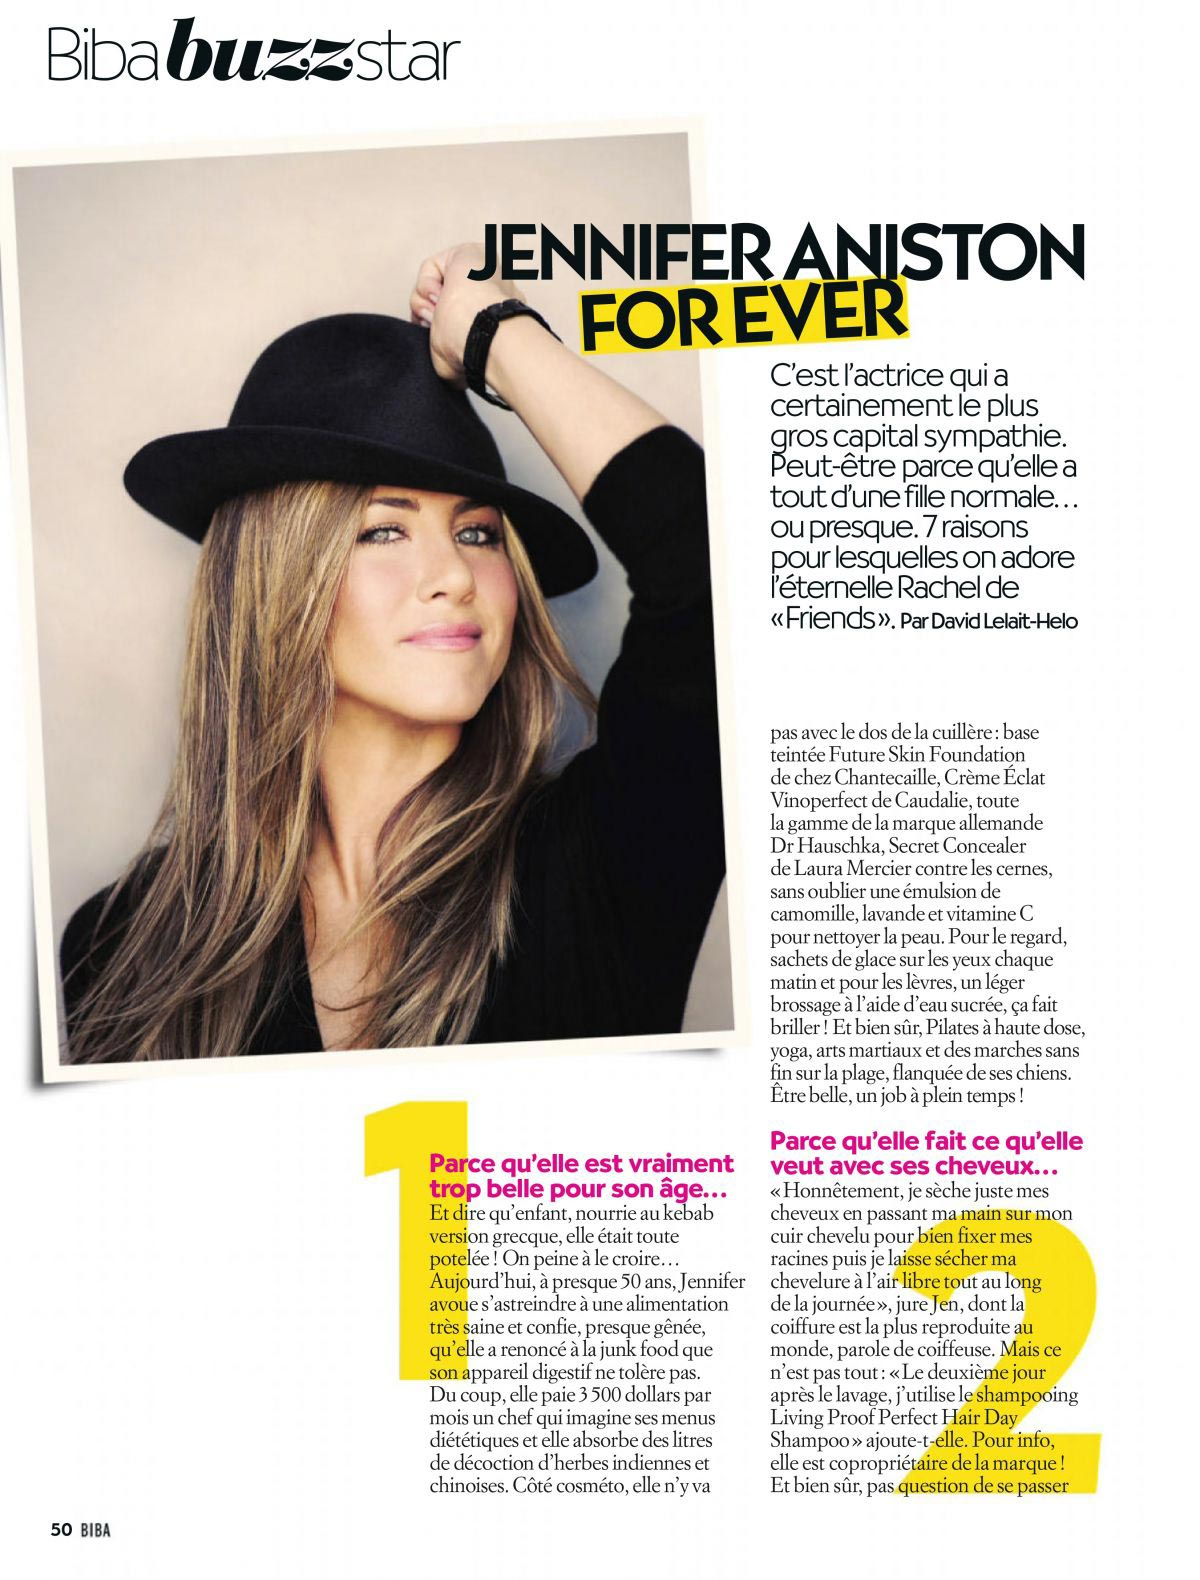 Jennifer Aniston in Biba Magazine, December 2018 1